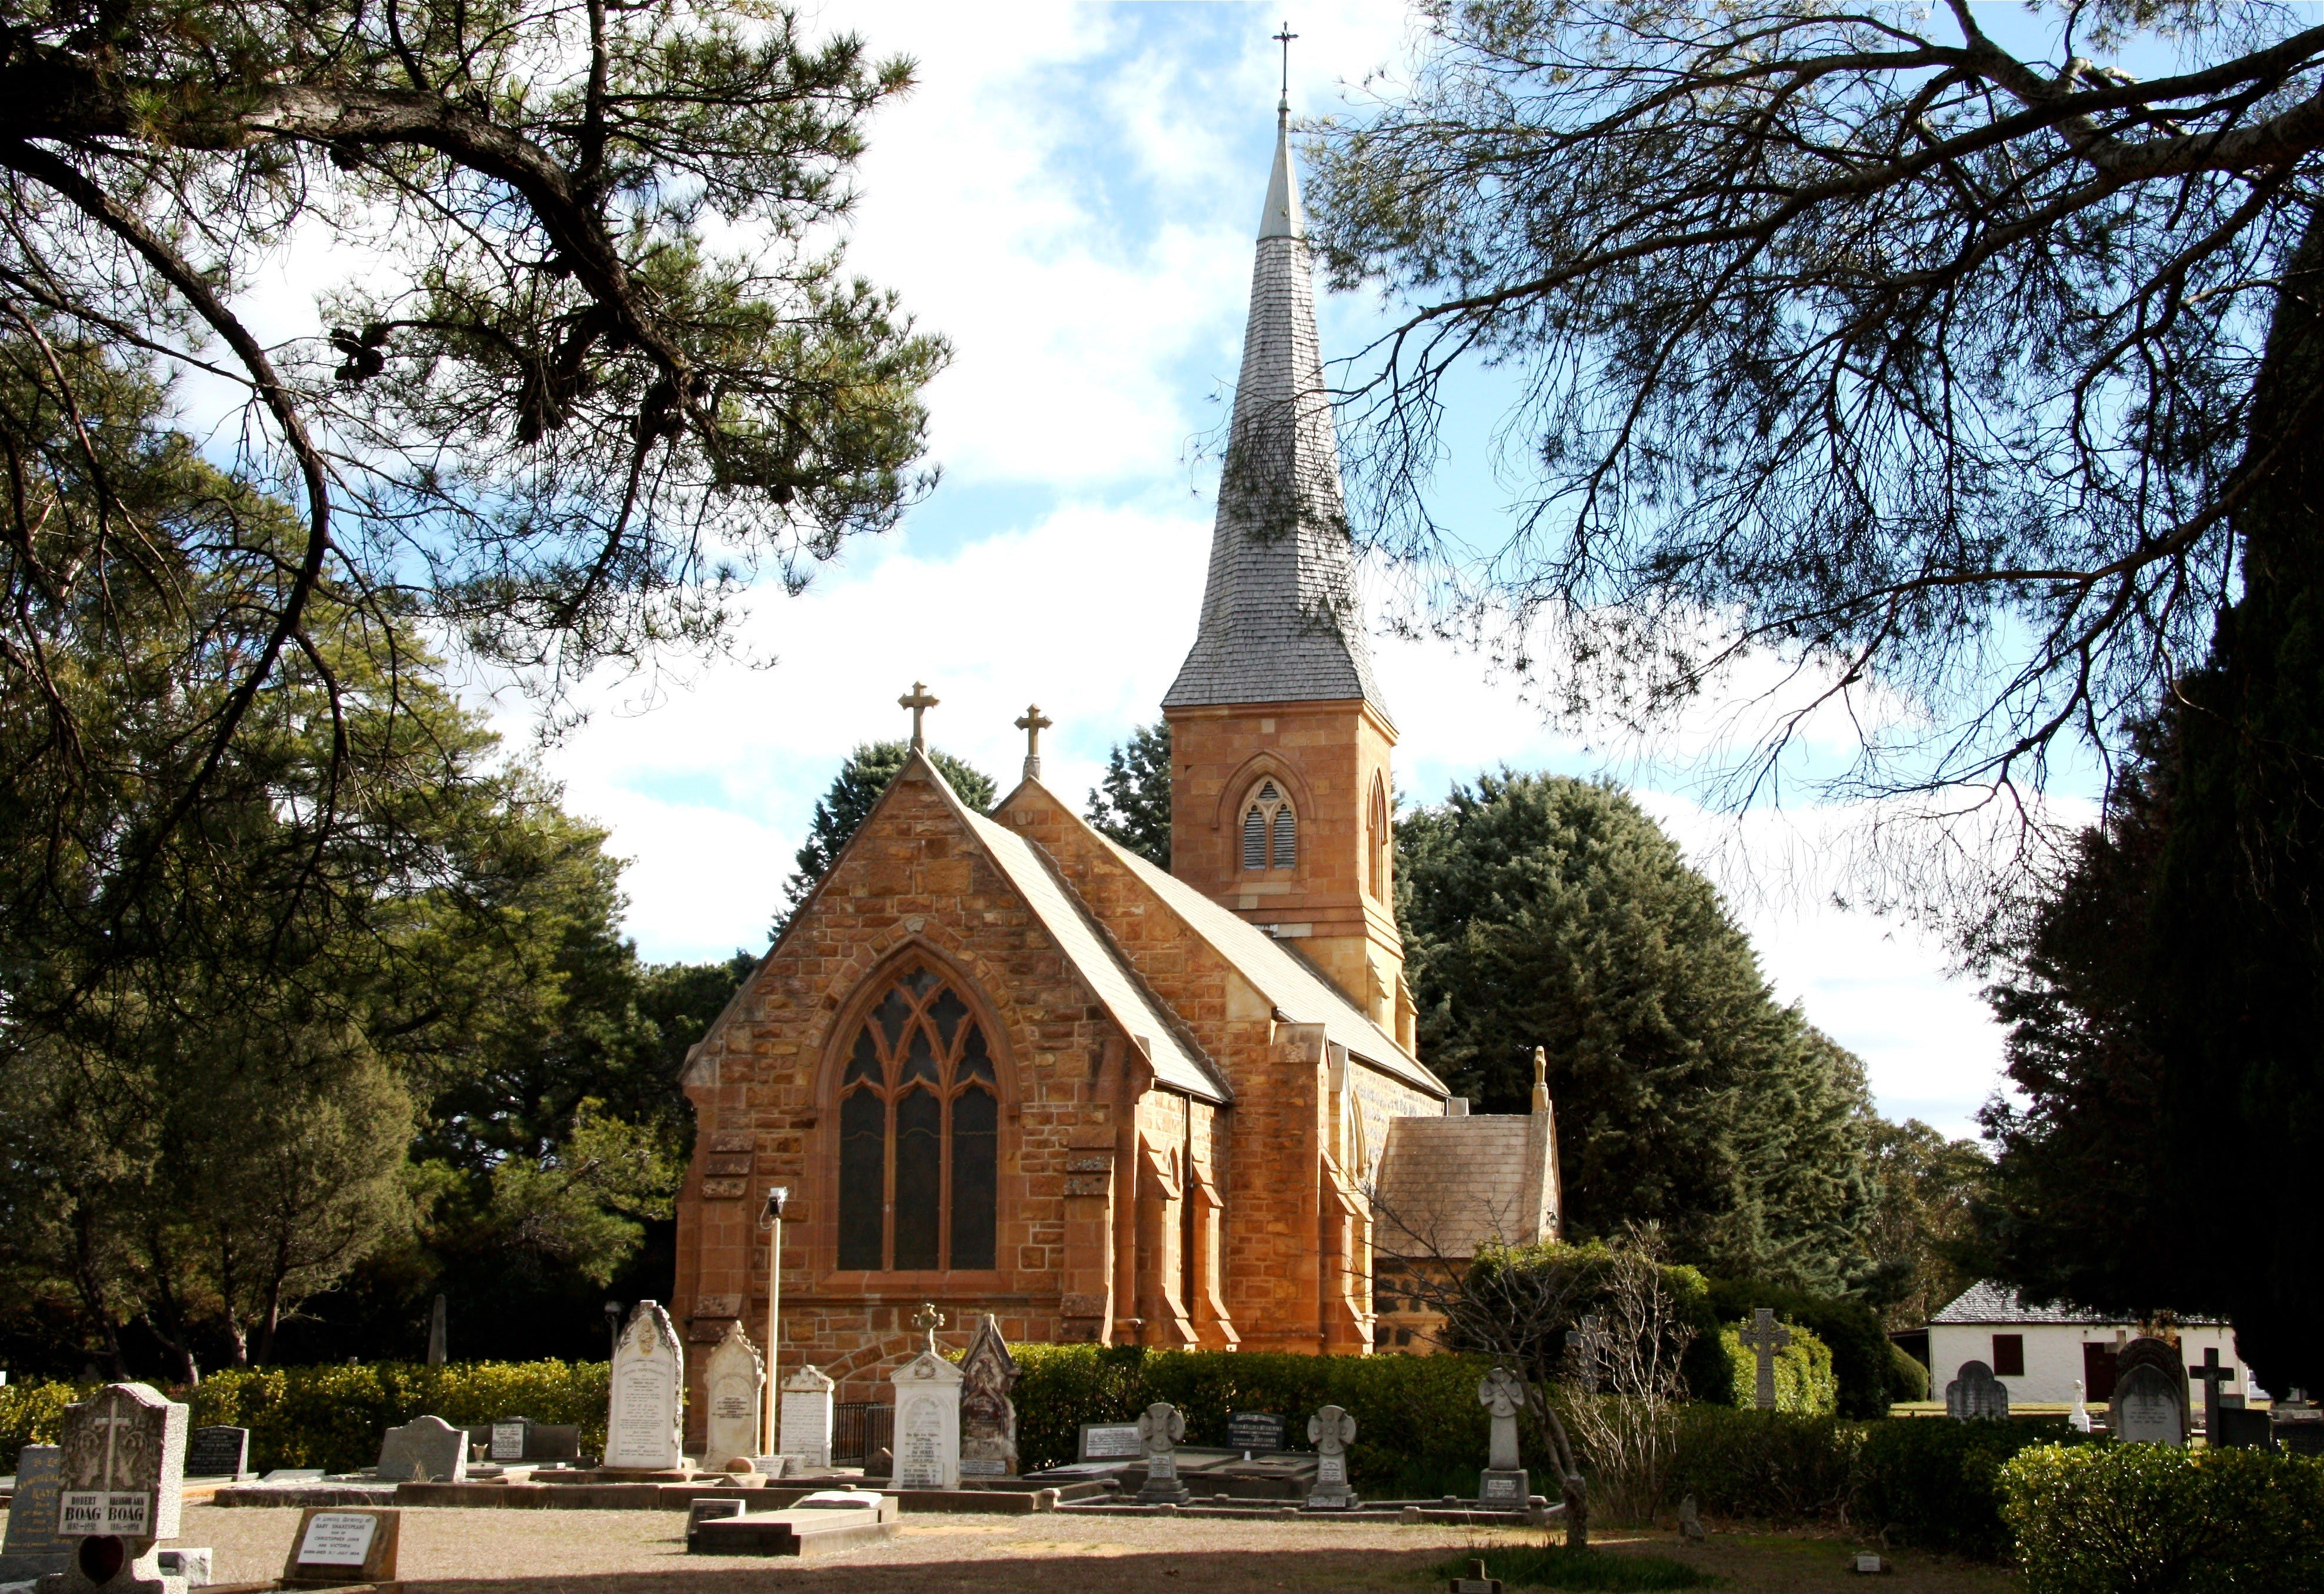 Church of St John the Baptist - Find Attractions